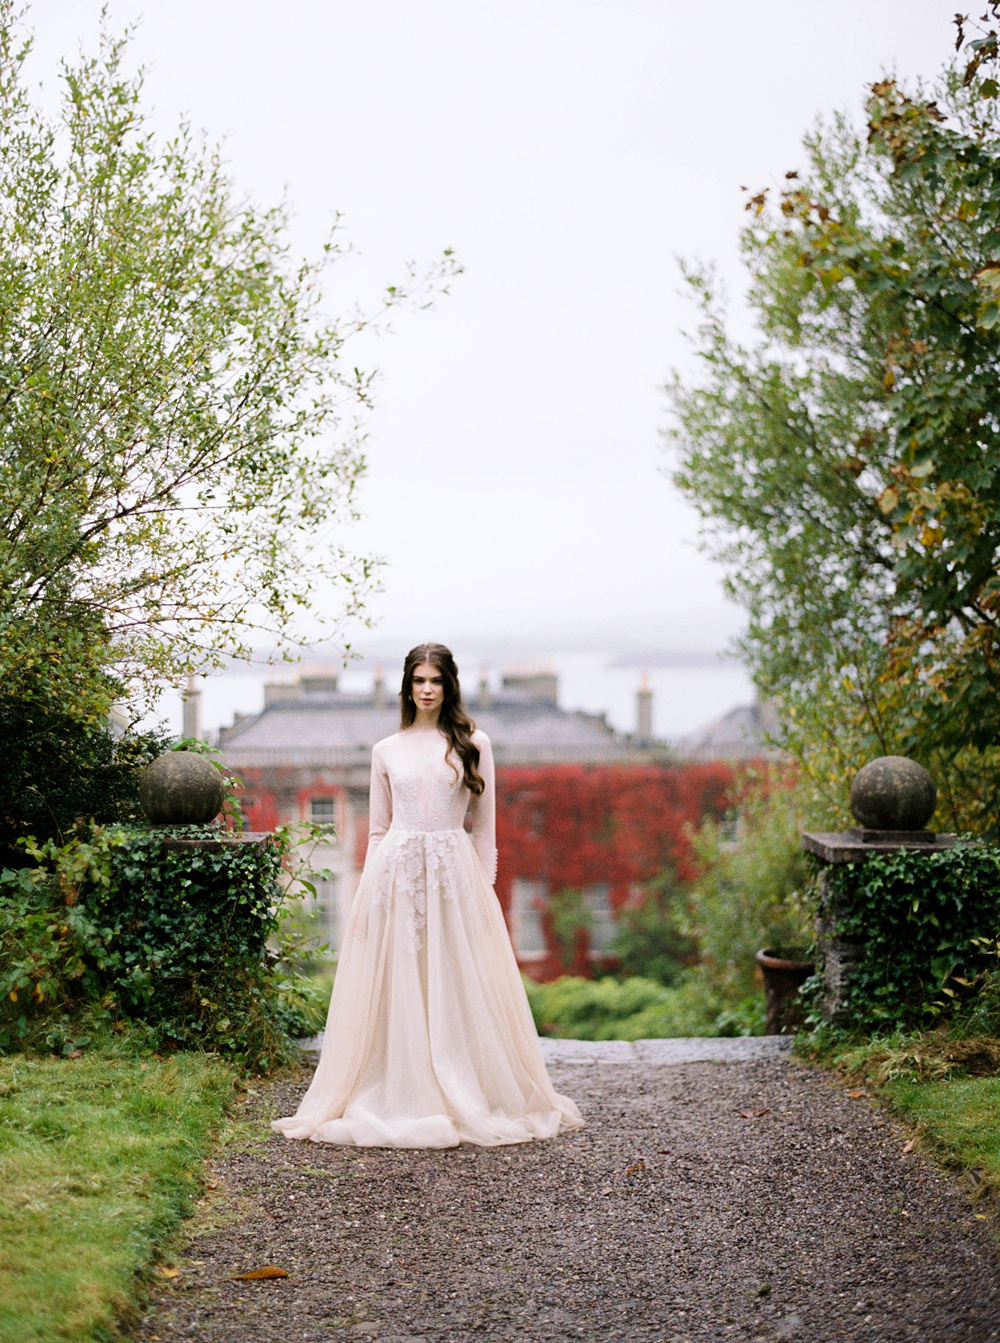 Bantry House Wedding Editorial with House of Hannah Events | Fine Art Wedding Photographer | Sarah Carpenter Wedding Photography | Ireland and Destinations Worldwide